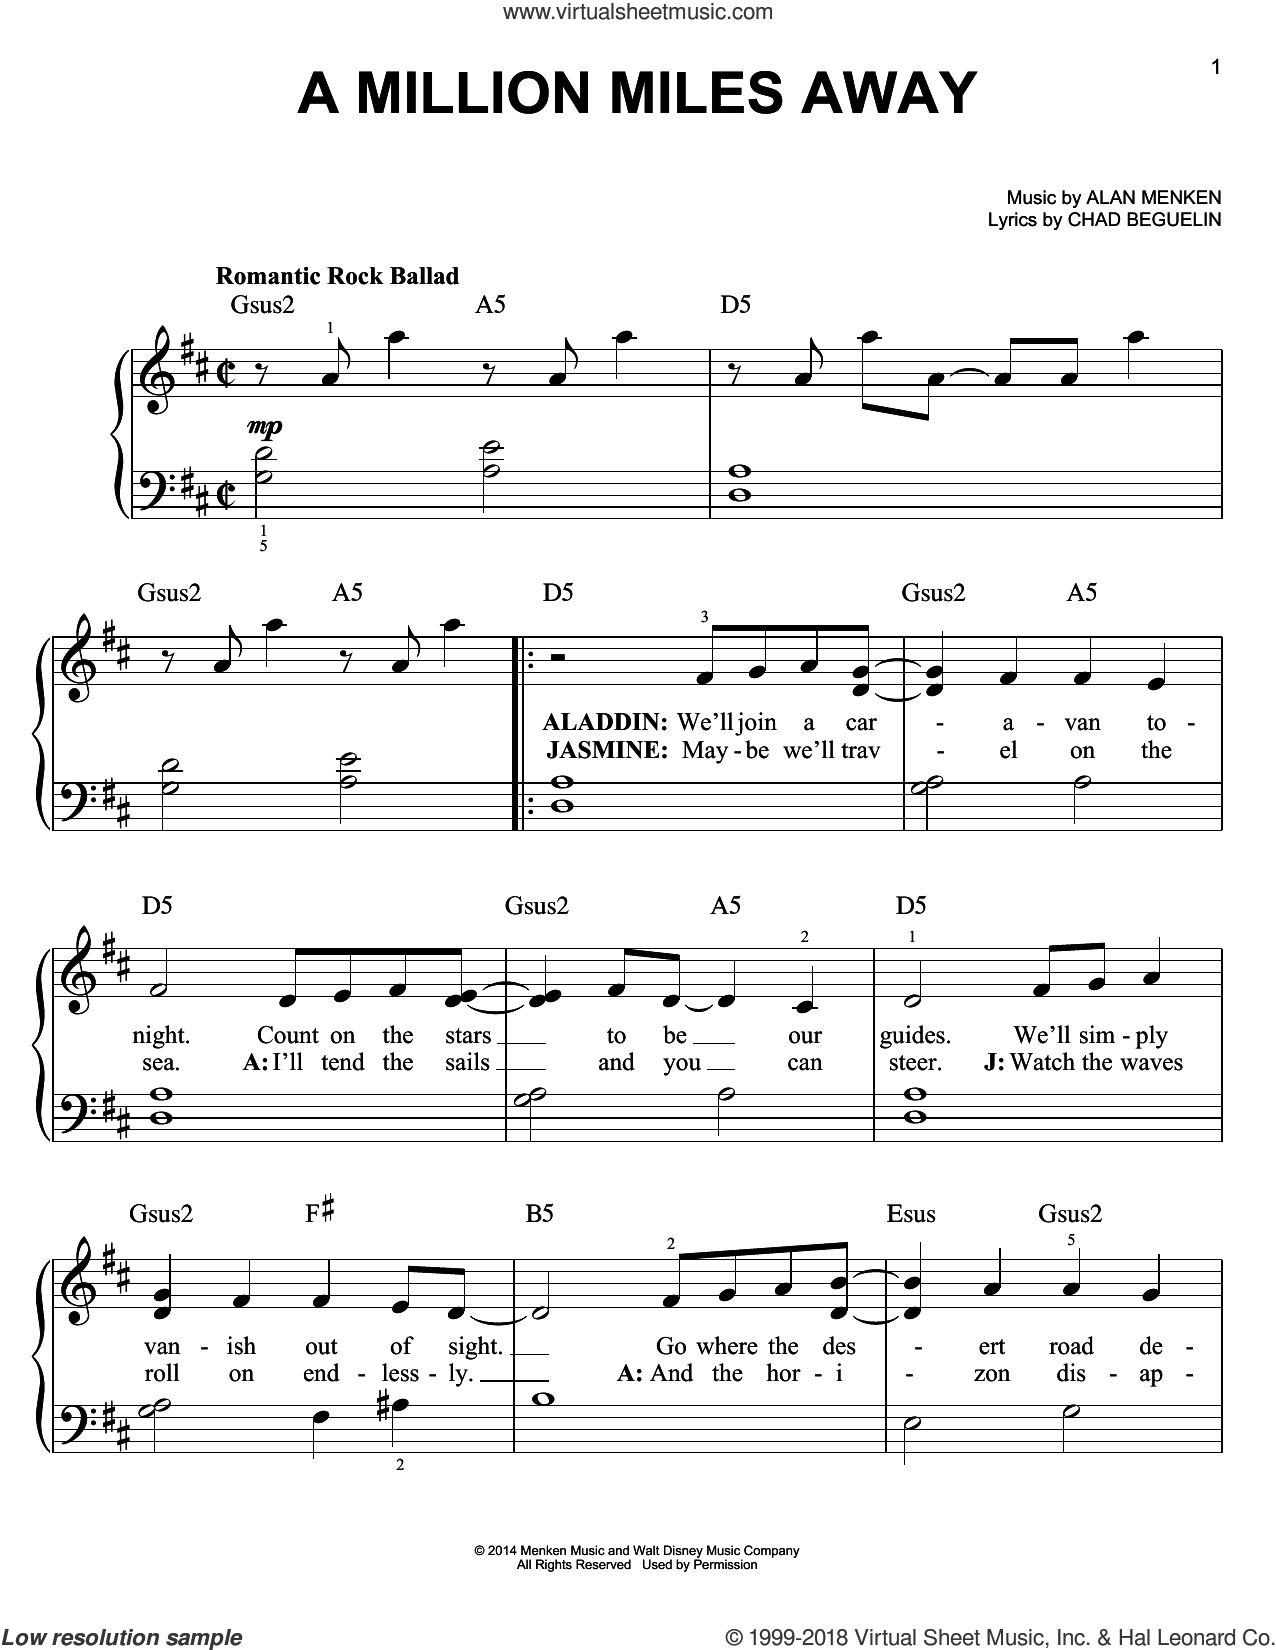 A Million Miles Away sheet music for piano solo by Alan Menken and Chad Beguelin. Score Image Preview.